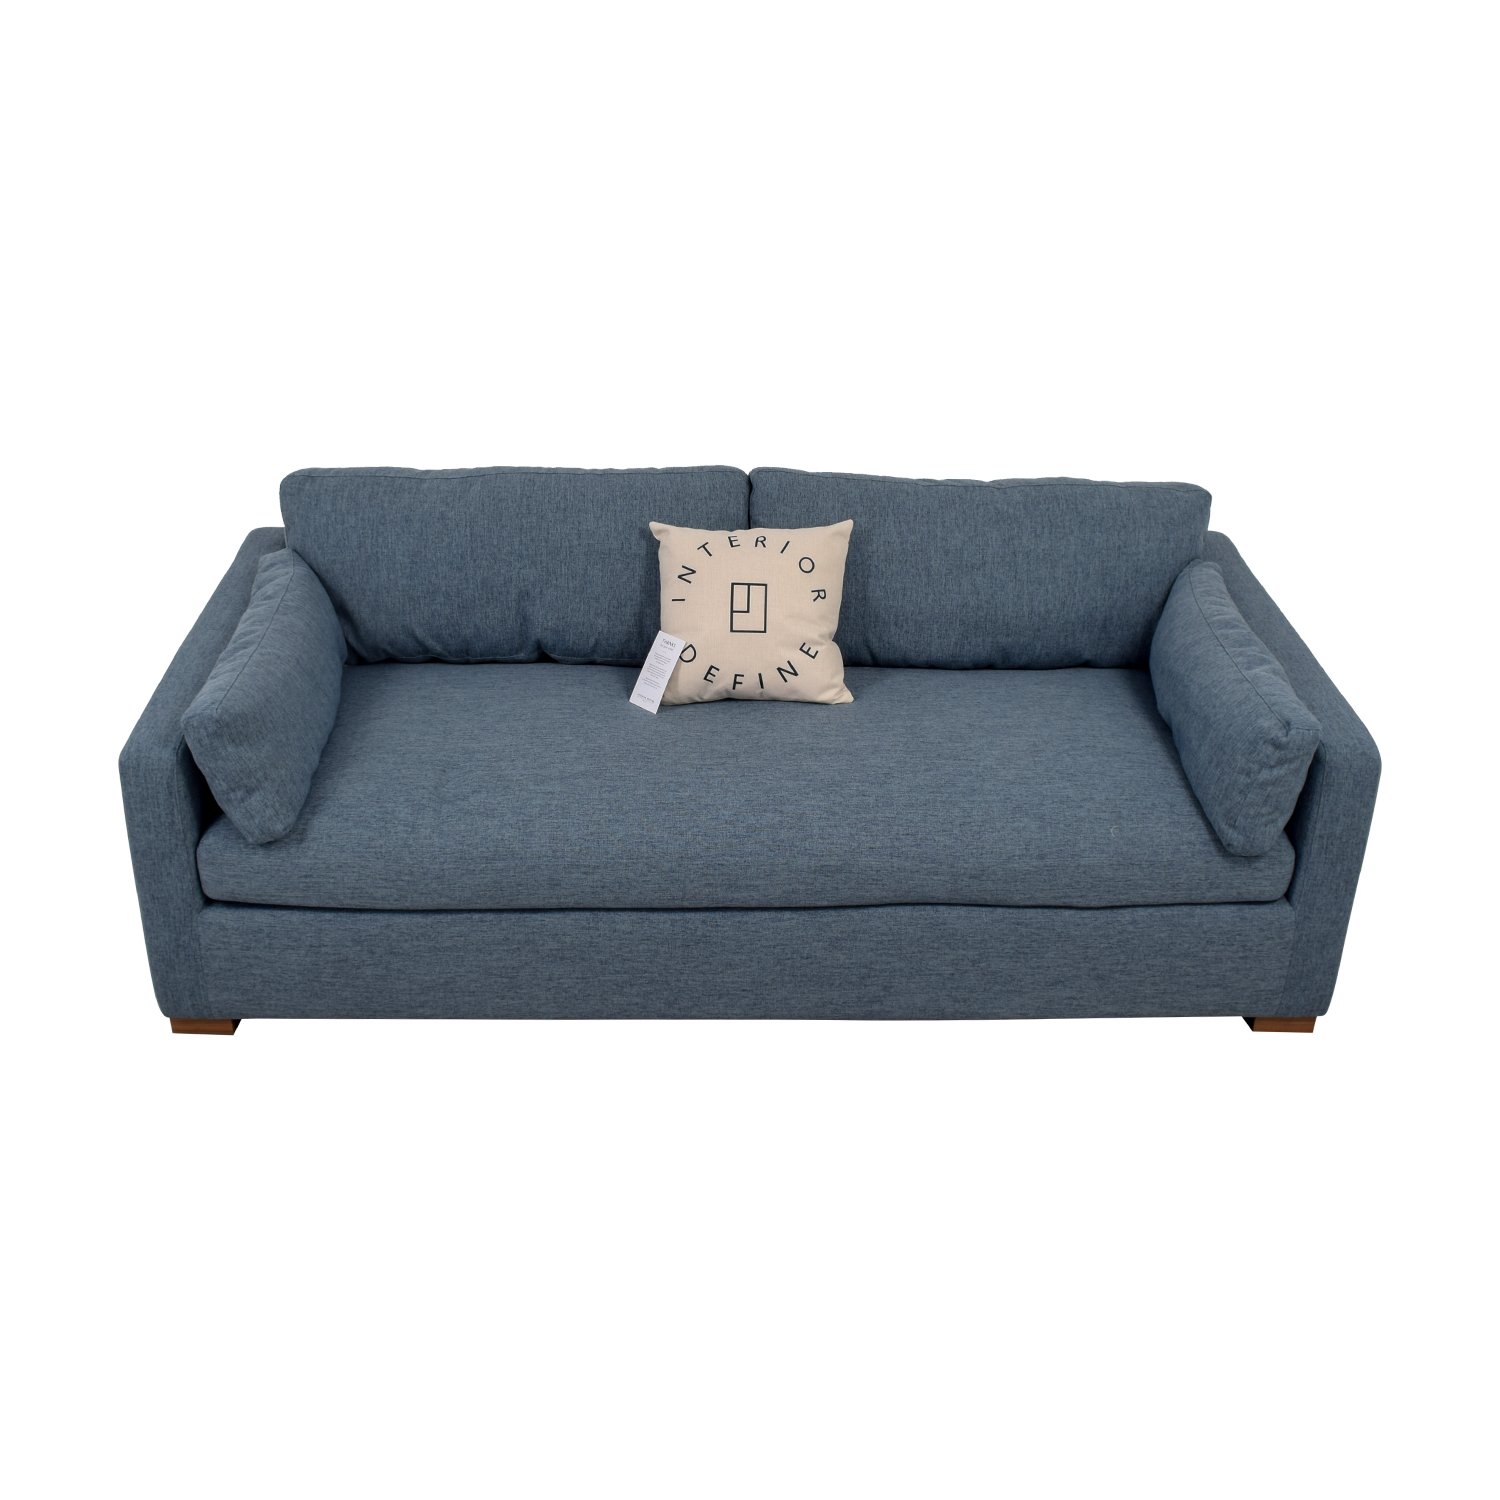 Charly Blue Single Cushion Sofa on sale